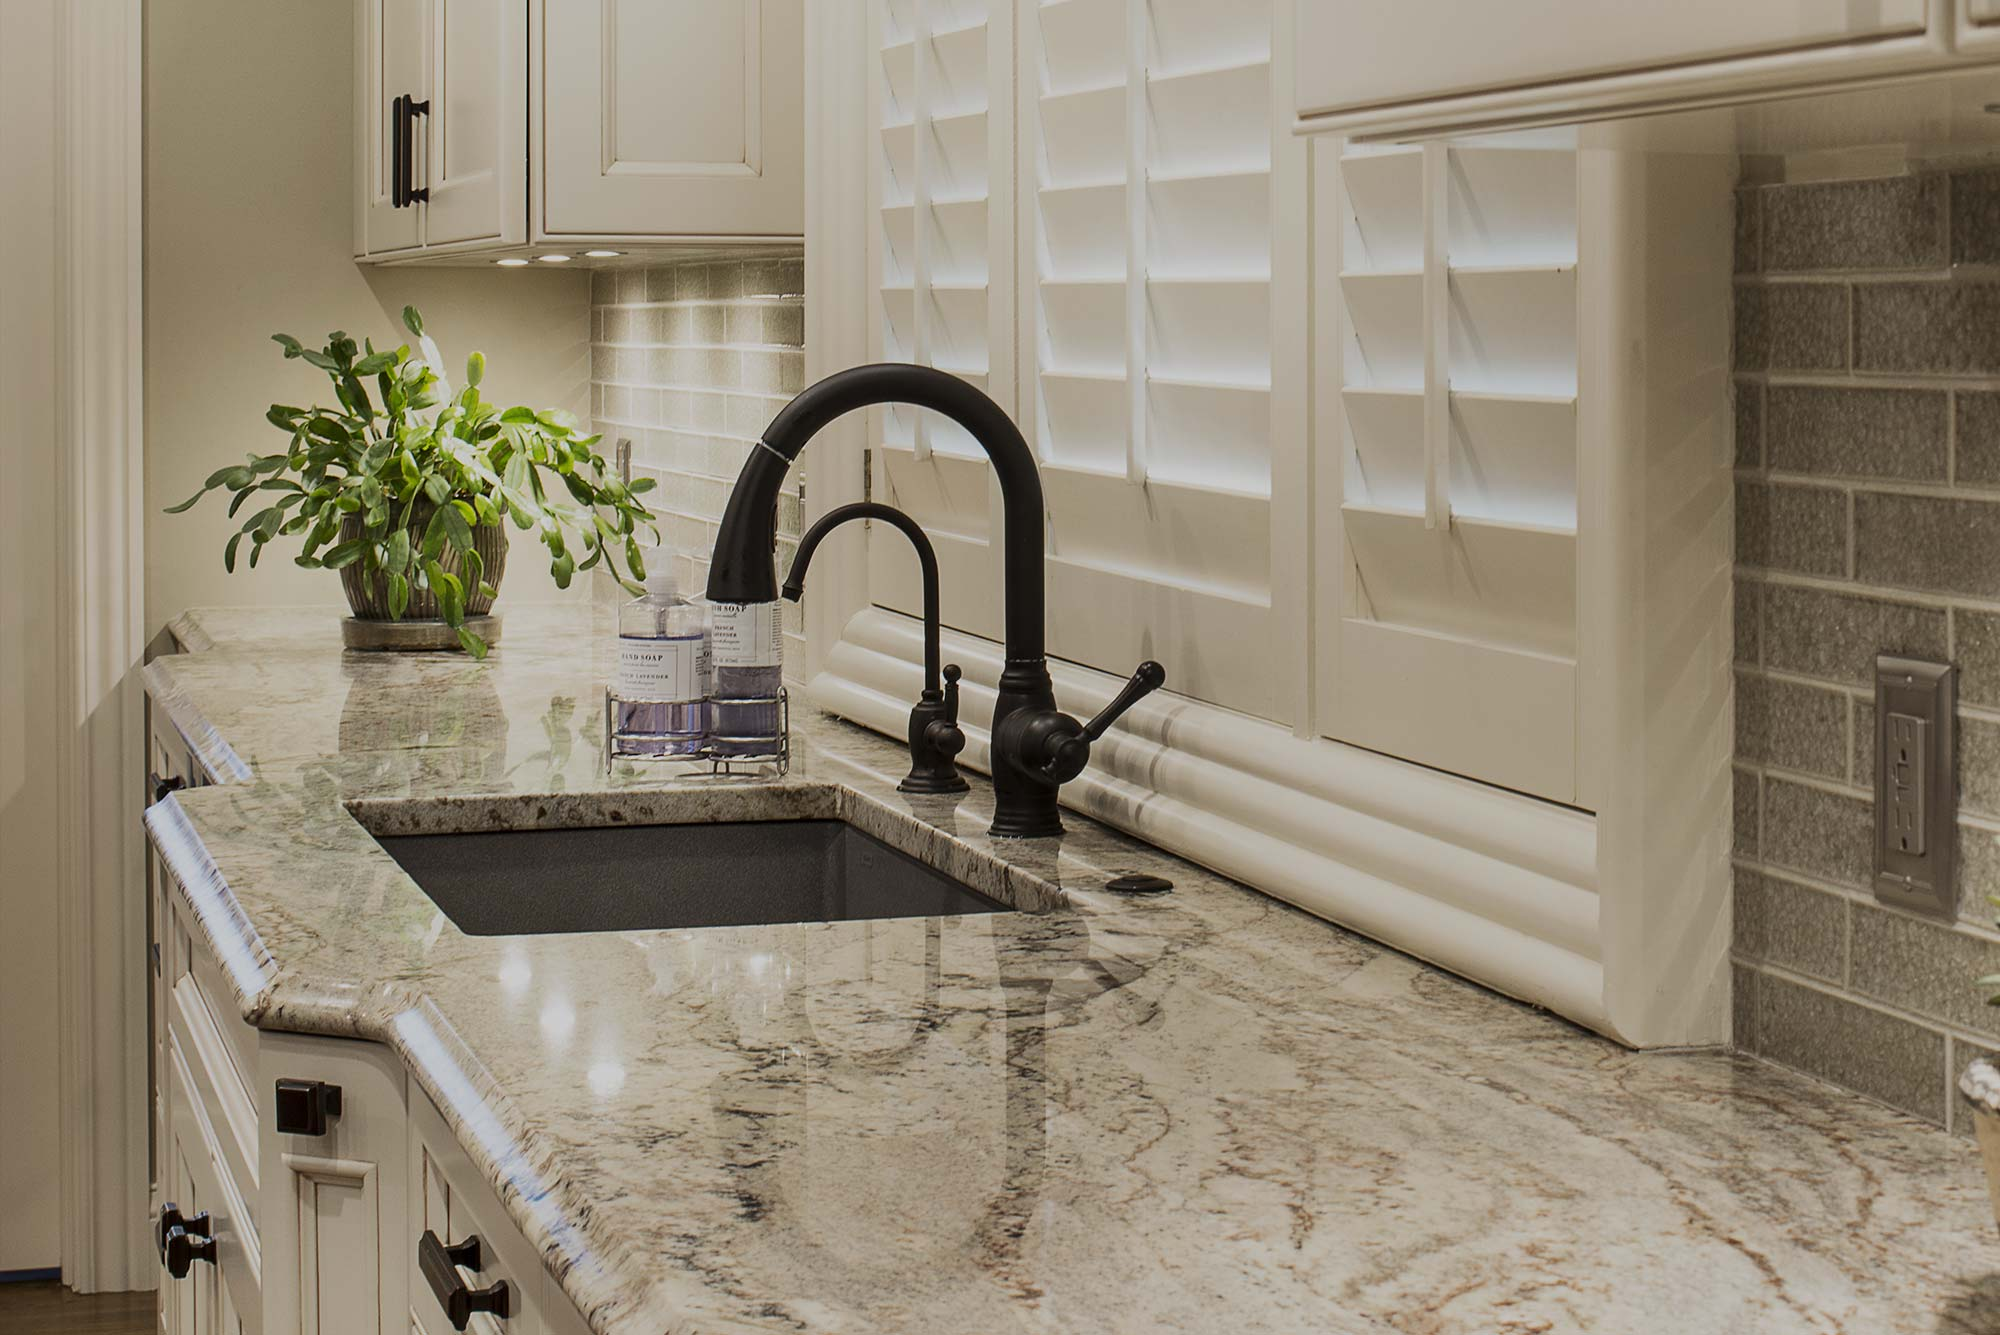 Marble & wood old world style kitchen clean-up kitchen sink